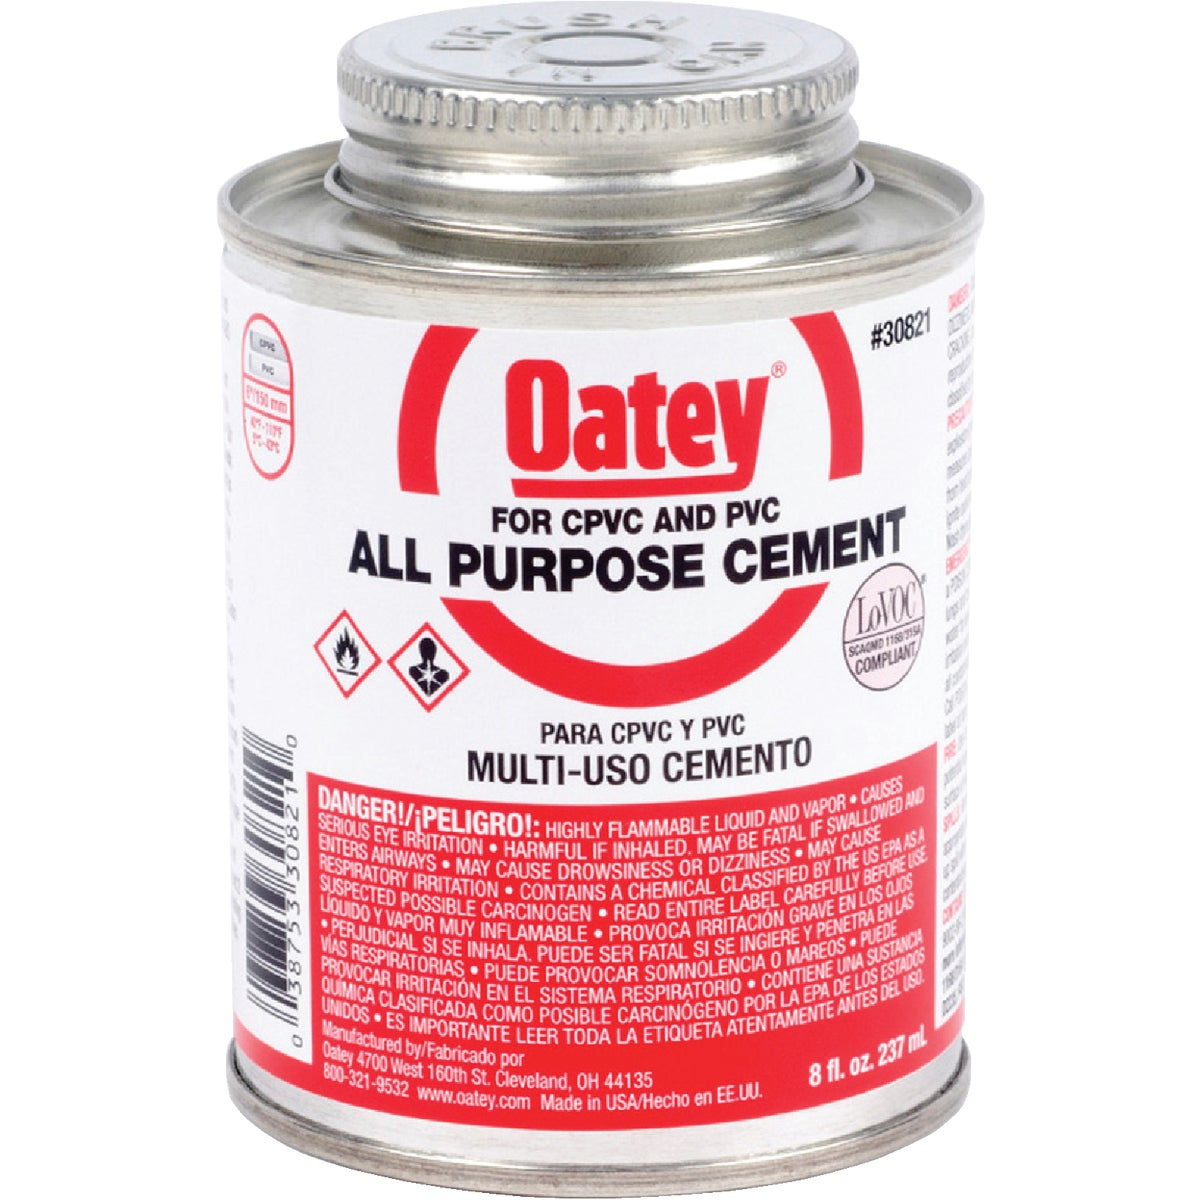 Oatey 1/2PT ALL-PURPOSE CEMENT 30821